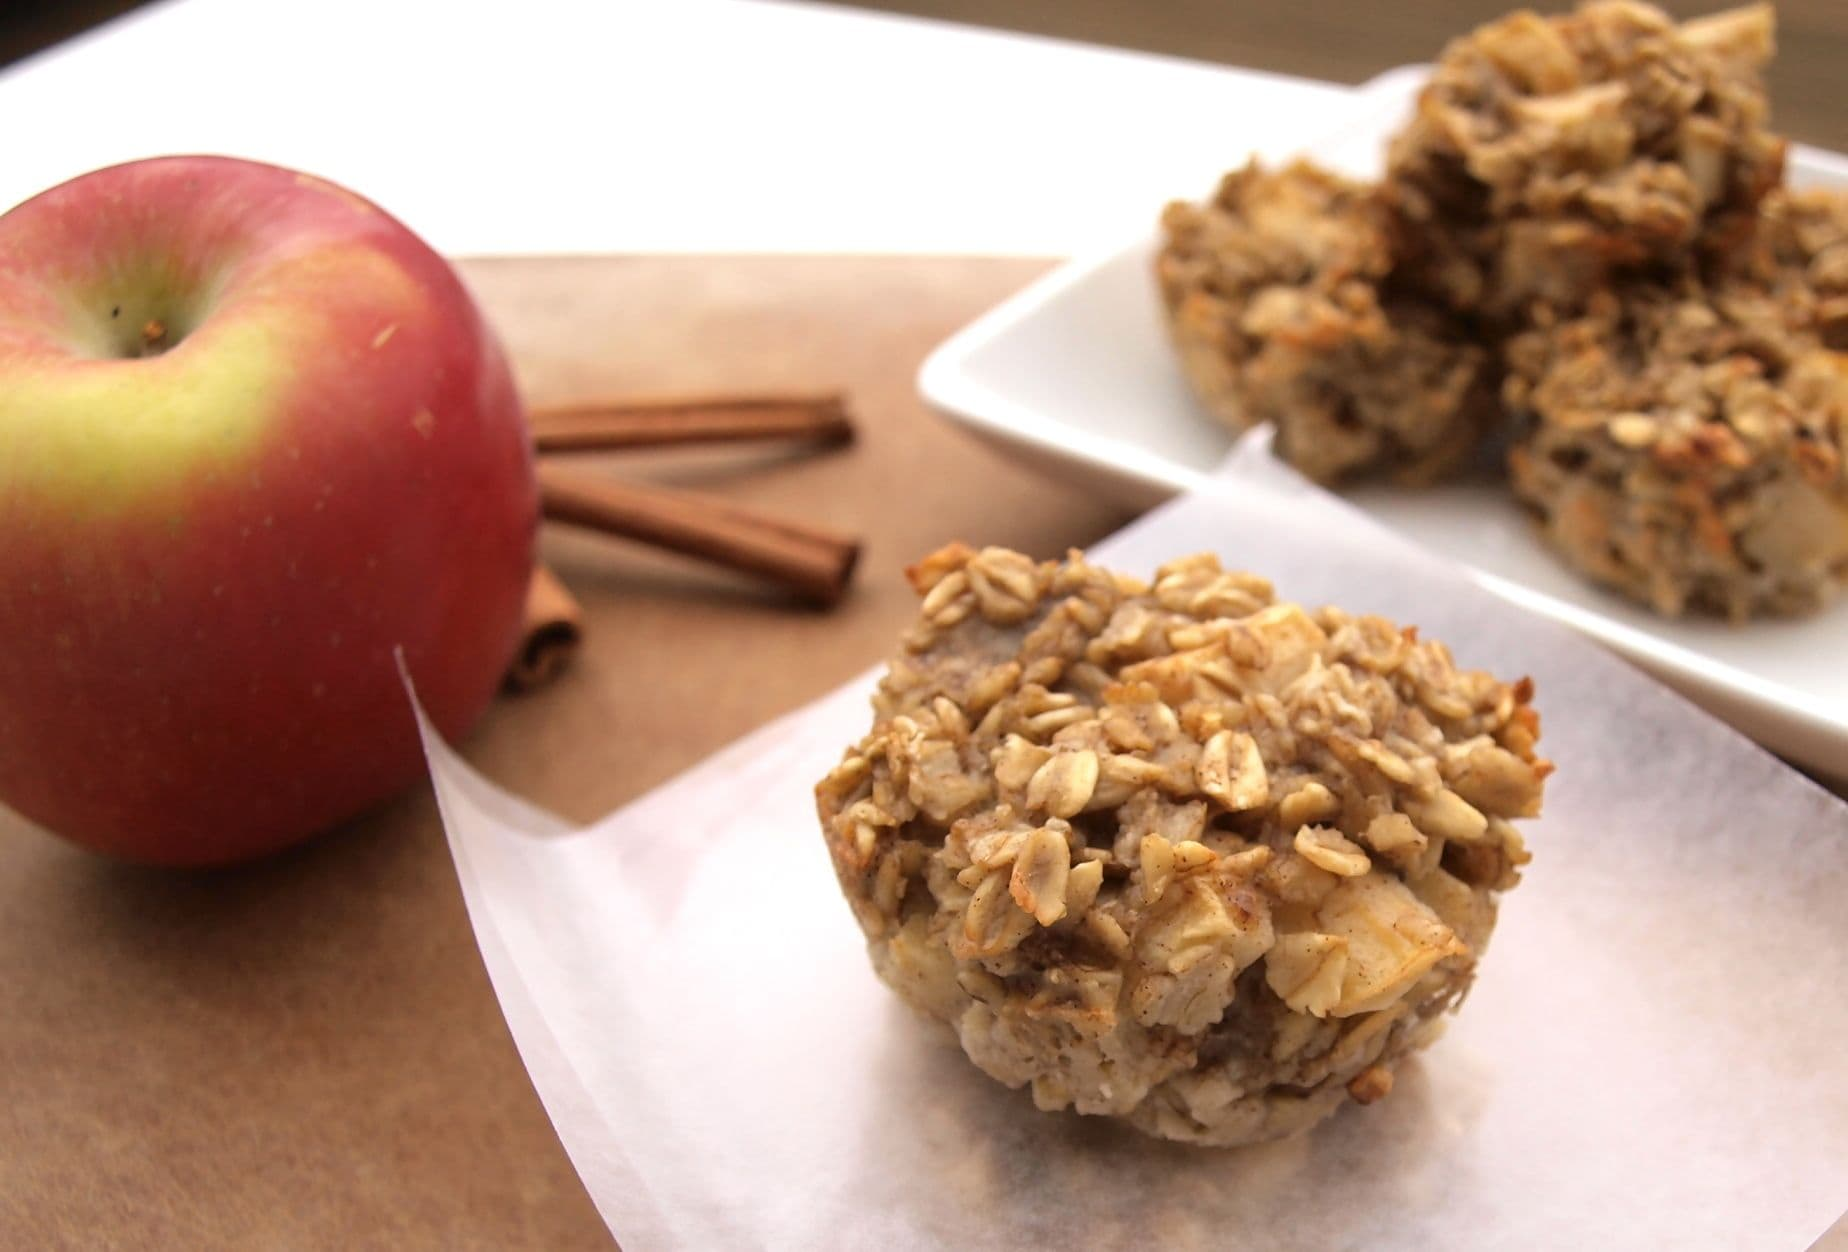 Apple cinnamon baked oatmeal cups {Gluten-free, Dairy-free, Nut-free, Soy-free}